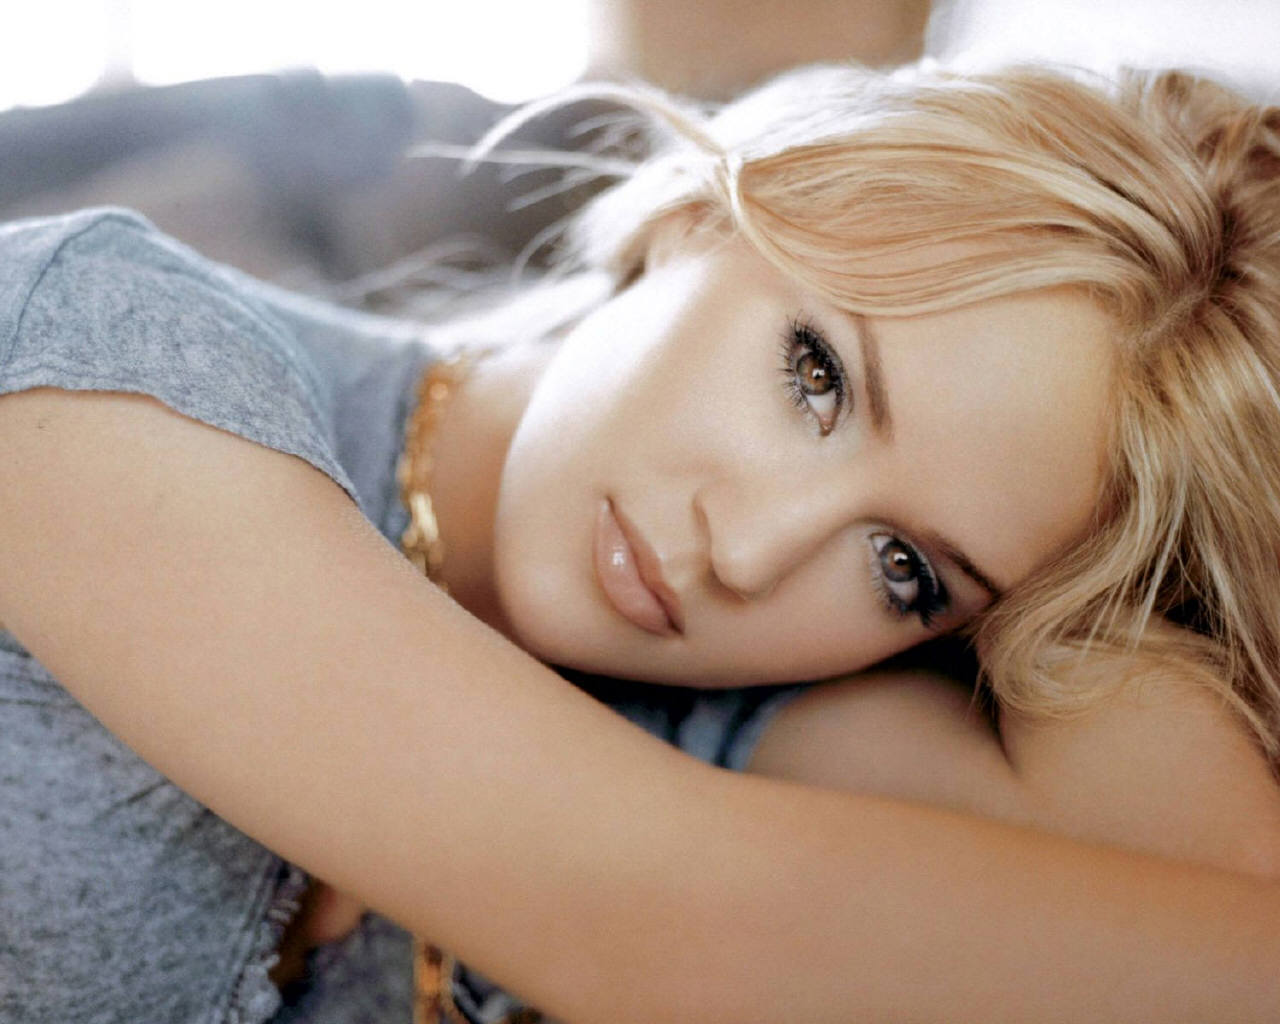 Carrie Underwood Wallpaper   Country Music Wallpaper 10596500 1280x1024